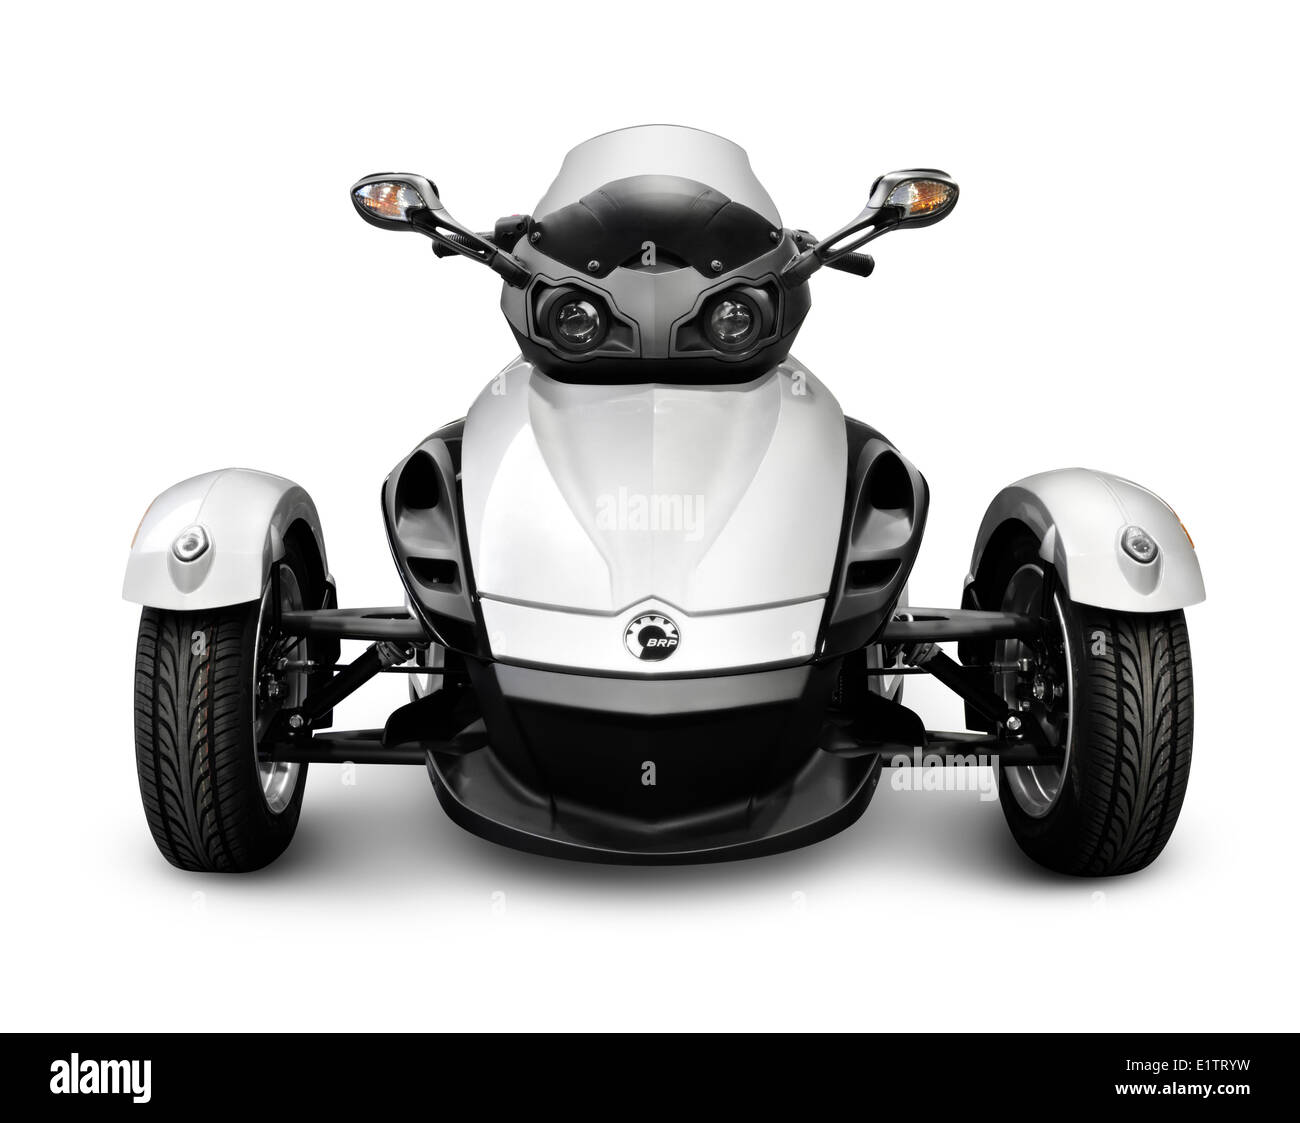 2009 BRP Can-Am Spyder Roadster three-wheeled vehicle. Isolated on white background. - Stock Image